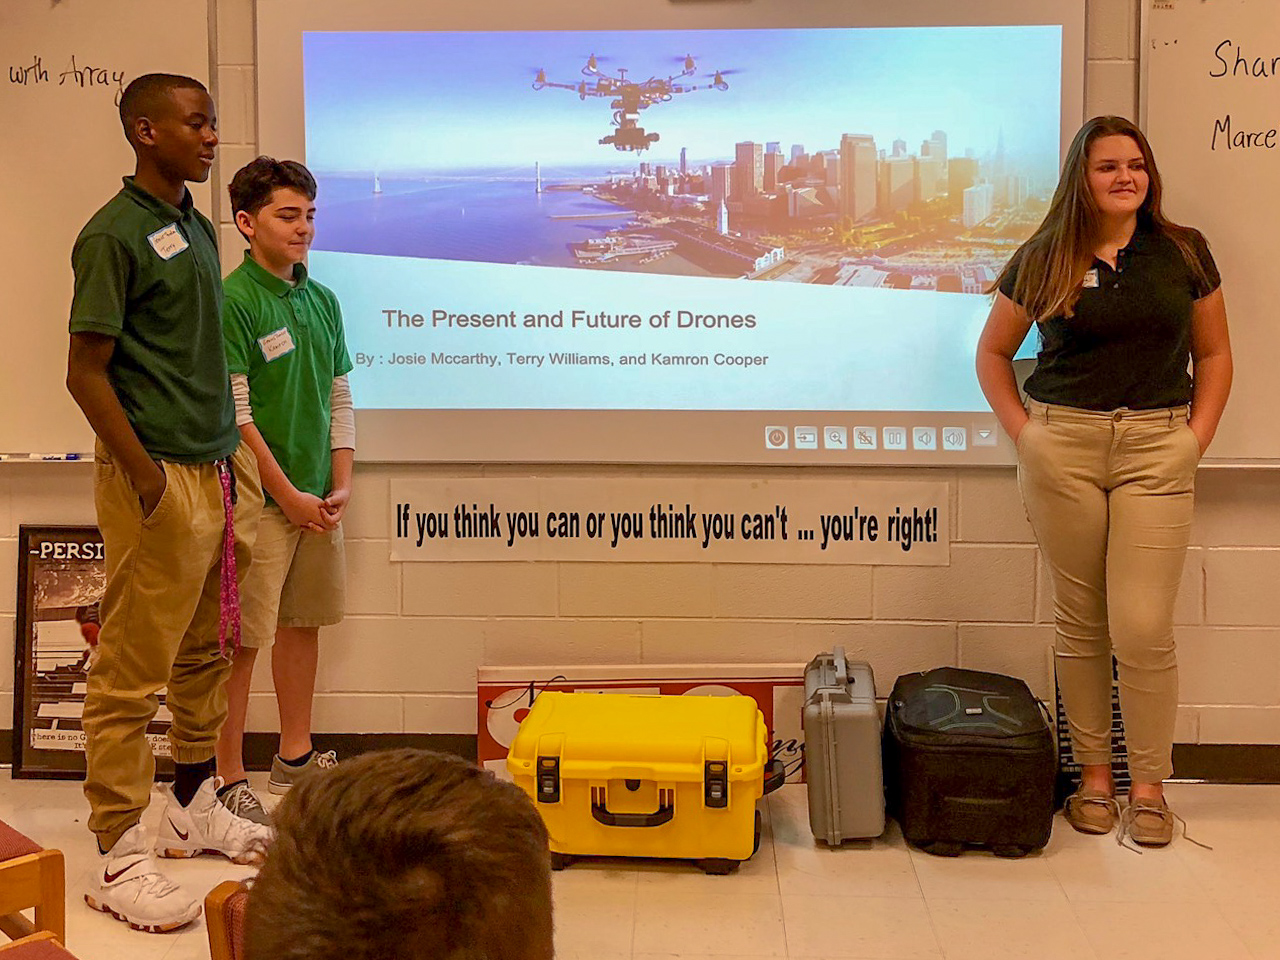 Educational Opportunities - We participate in educating people of all ages on drone technology and the use of them for problem solving in real-world environments. If you would like us to come to your school or organization to speak with the students or interested parties, please let us know.